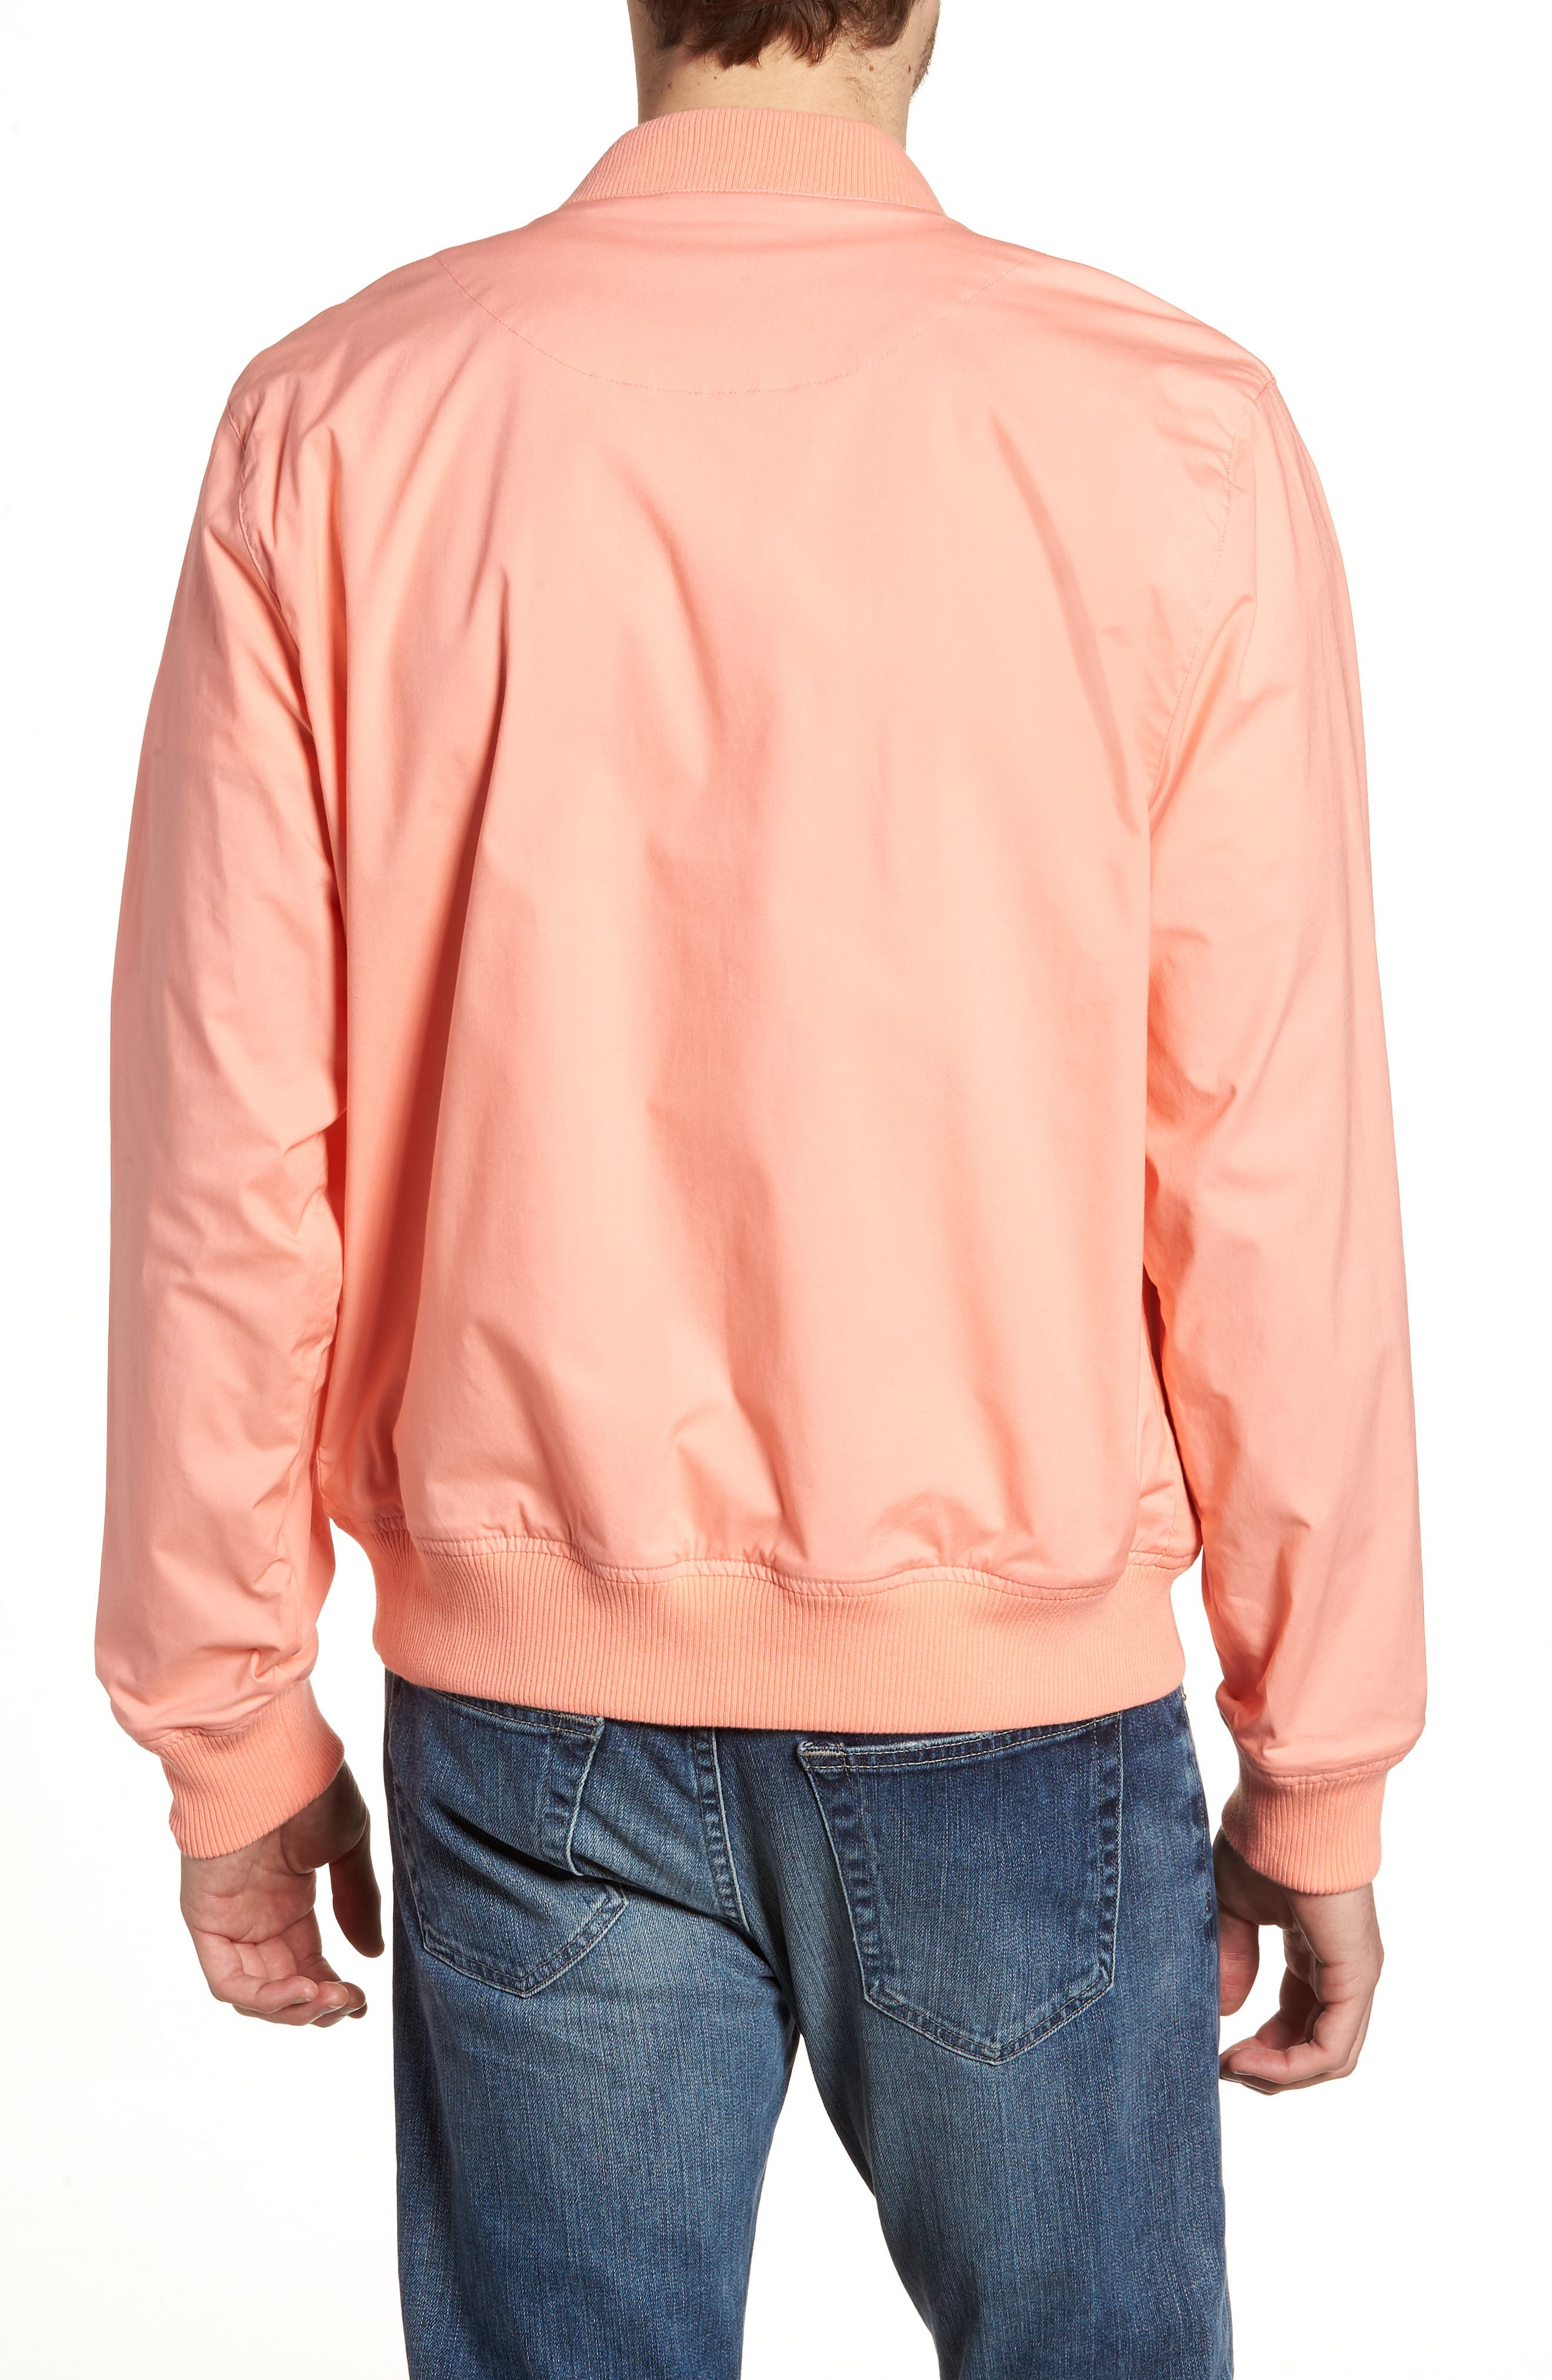 Stretch Bomber Jacket,                             Alternate thumbnail 2, color,                             Solid - Peach